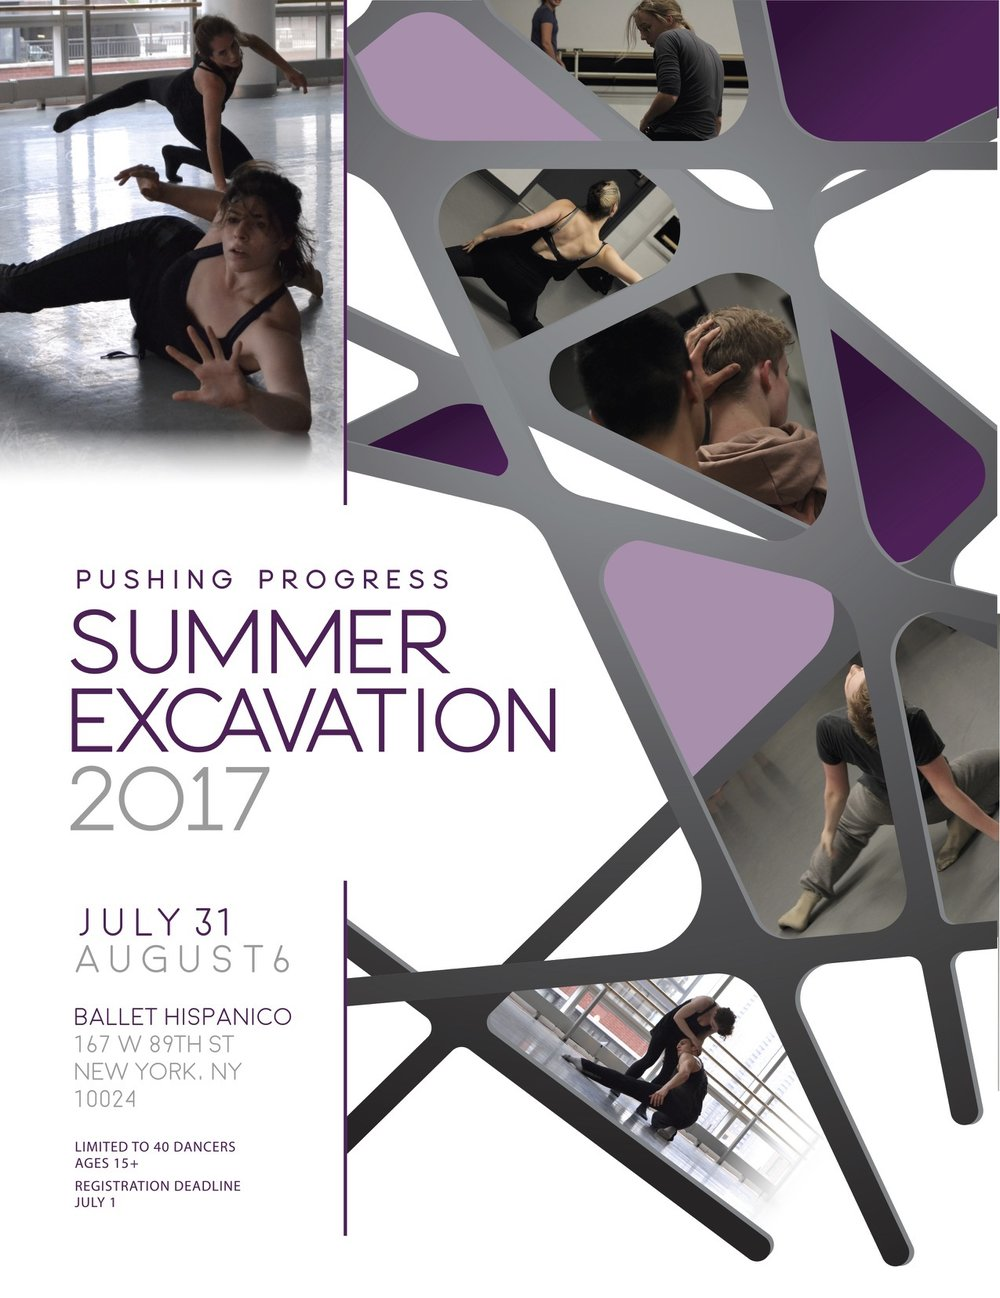 Summer Excavation Pushing Progress Contemporary Dance